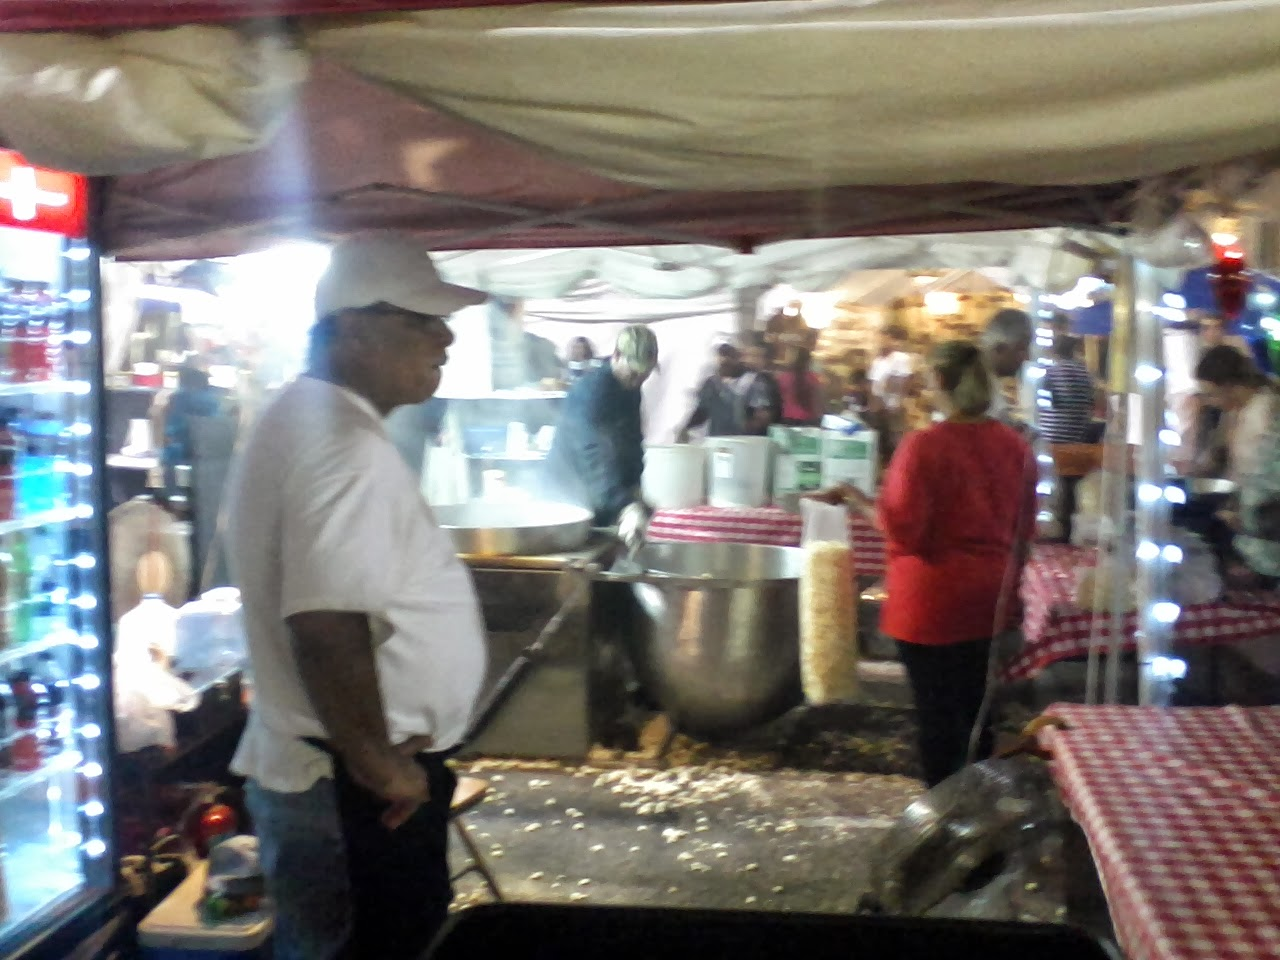 Fort Bend County Fair 2013 - 1005220043.jpg